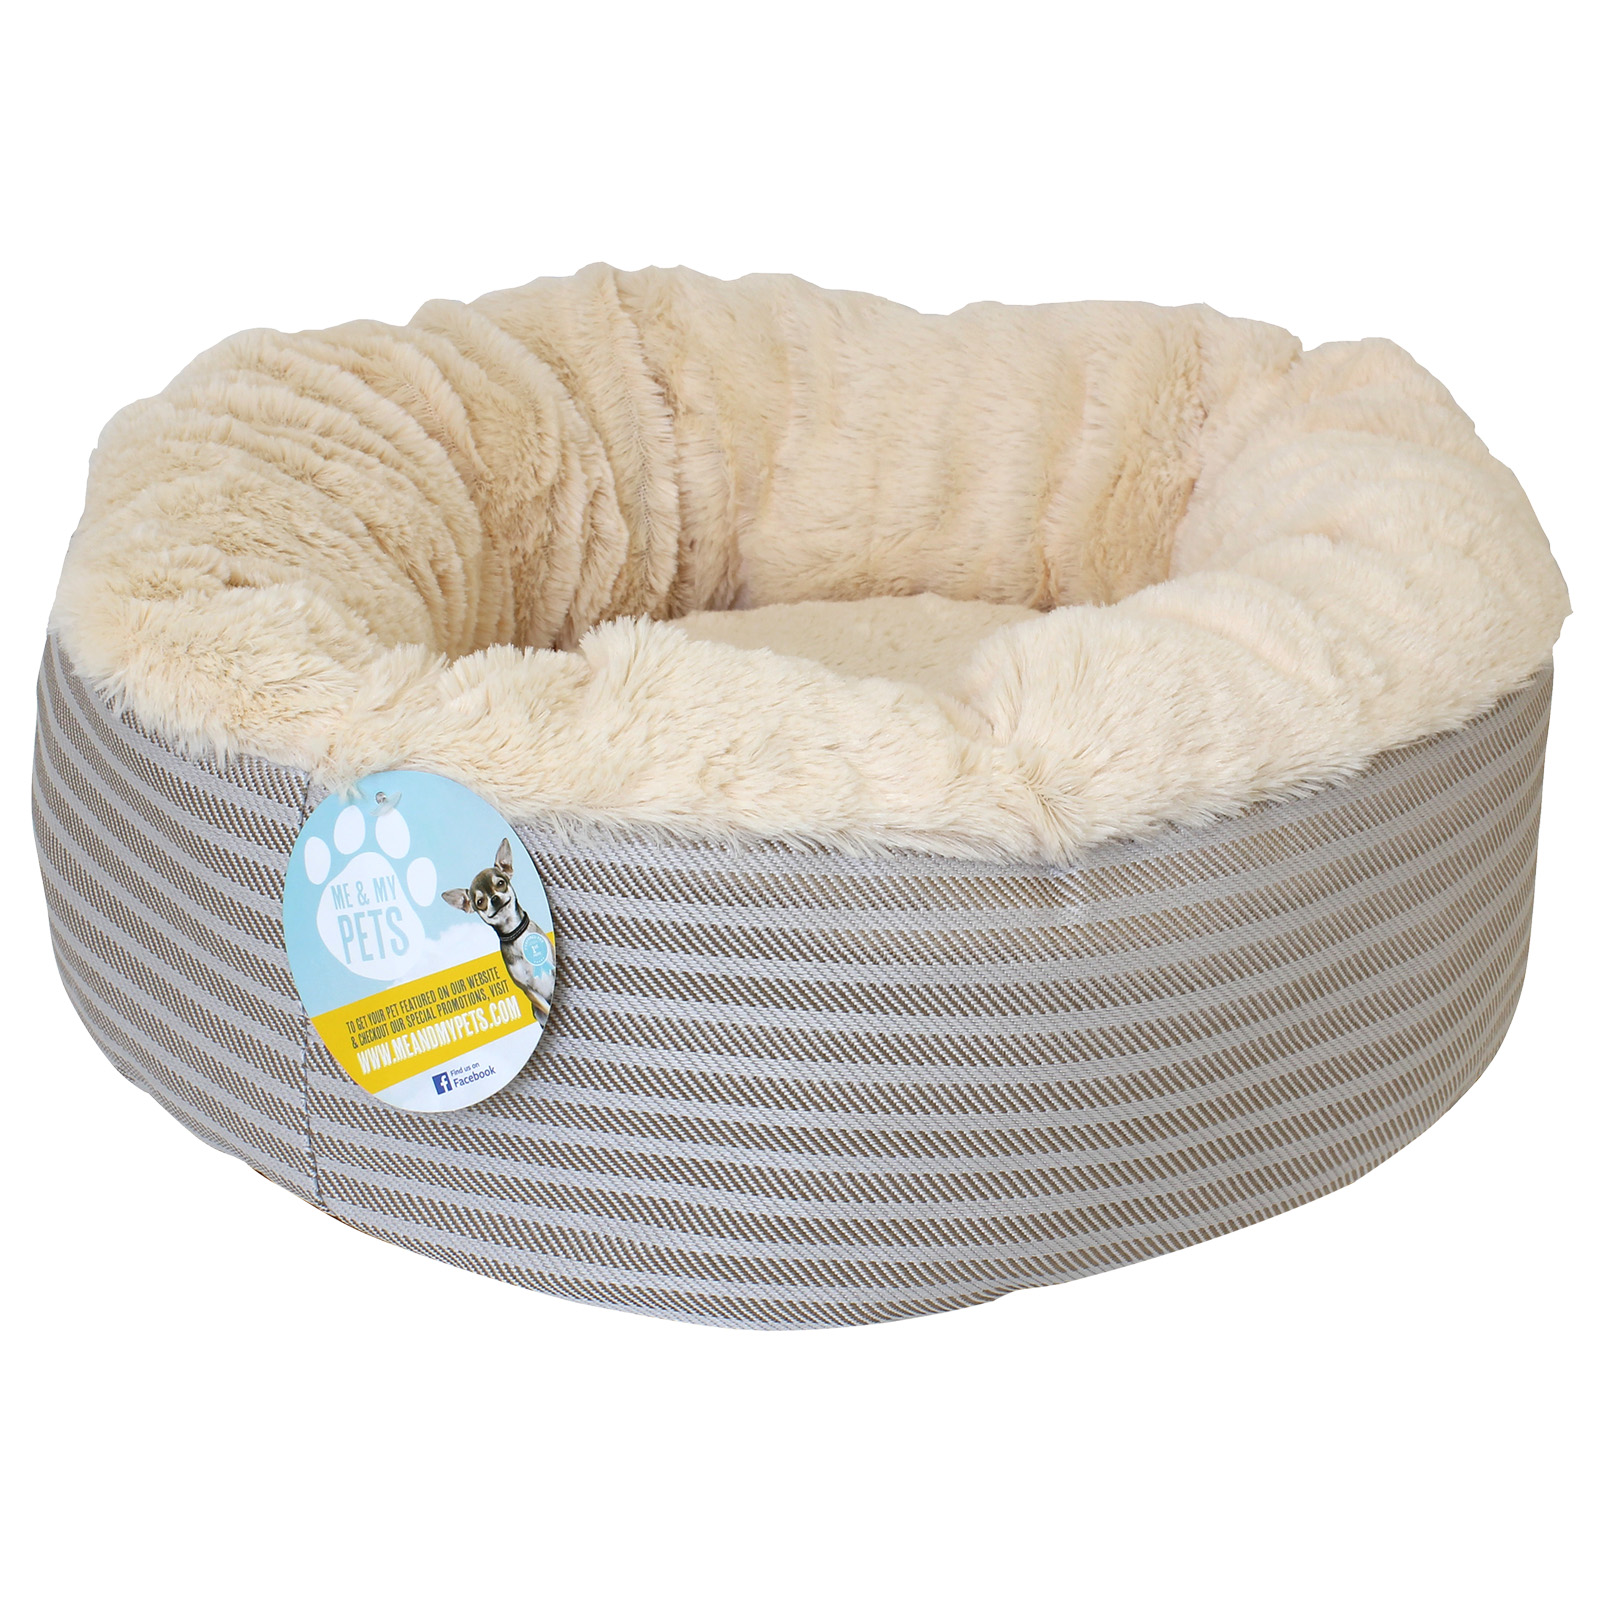 How To Keep Dog Bed Warm